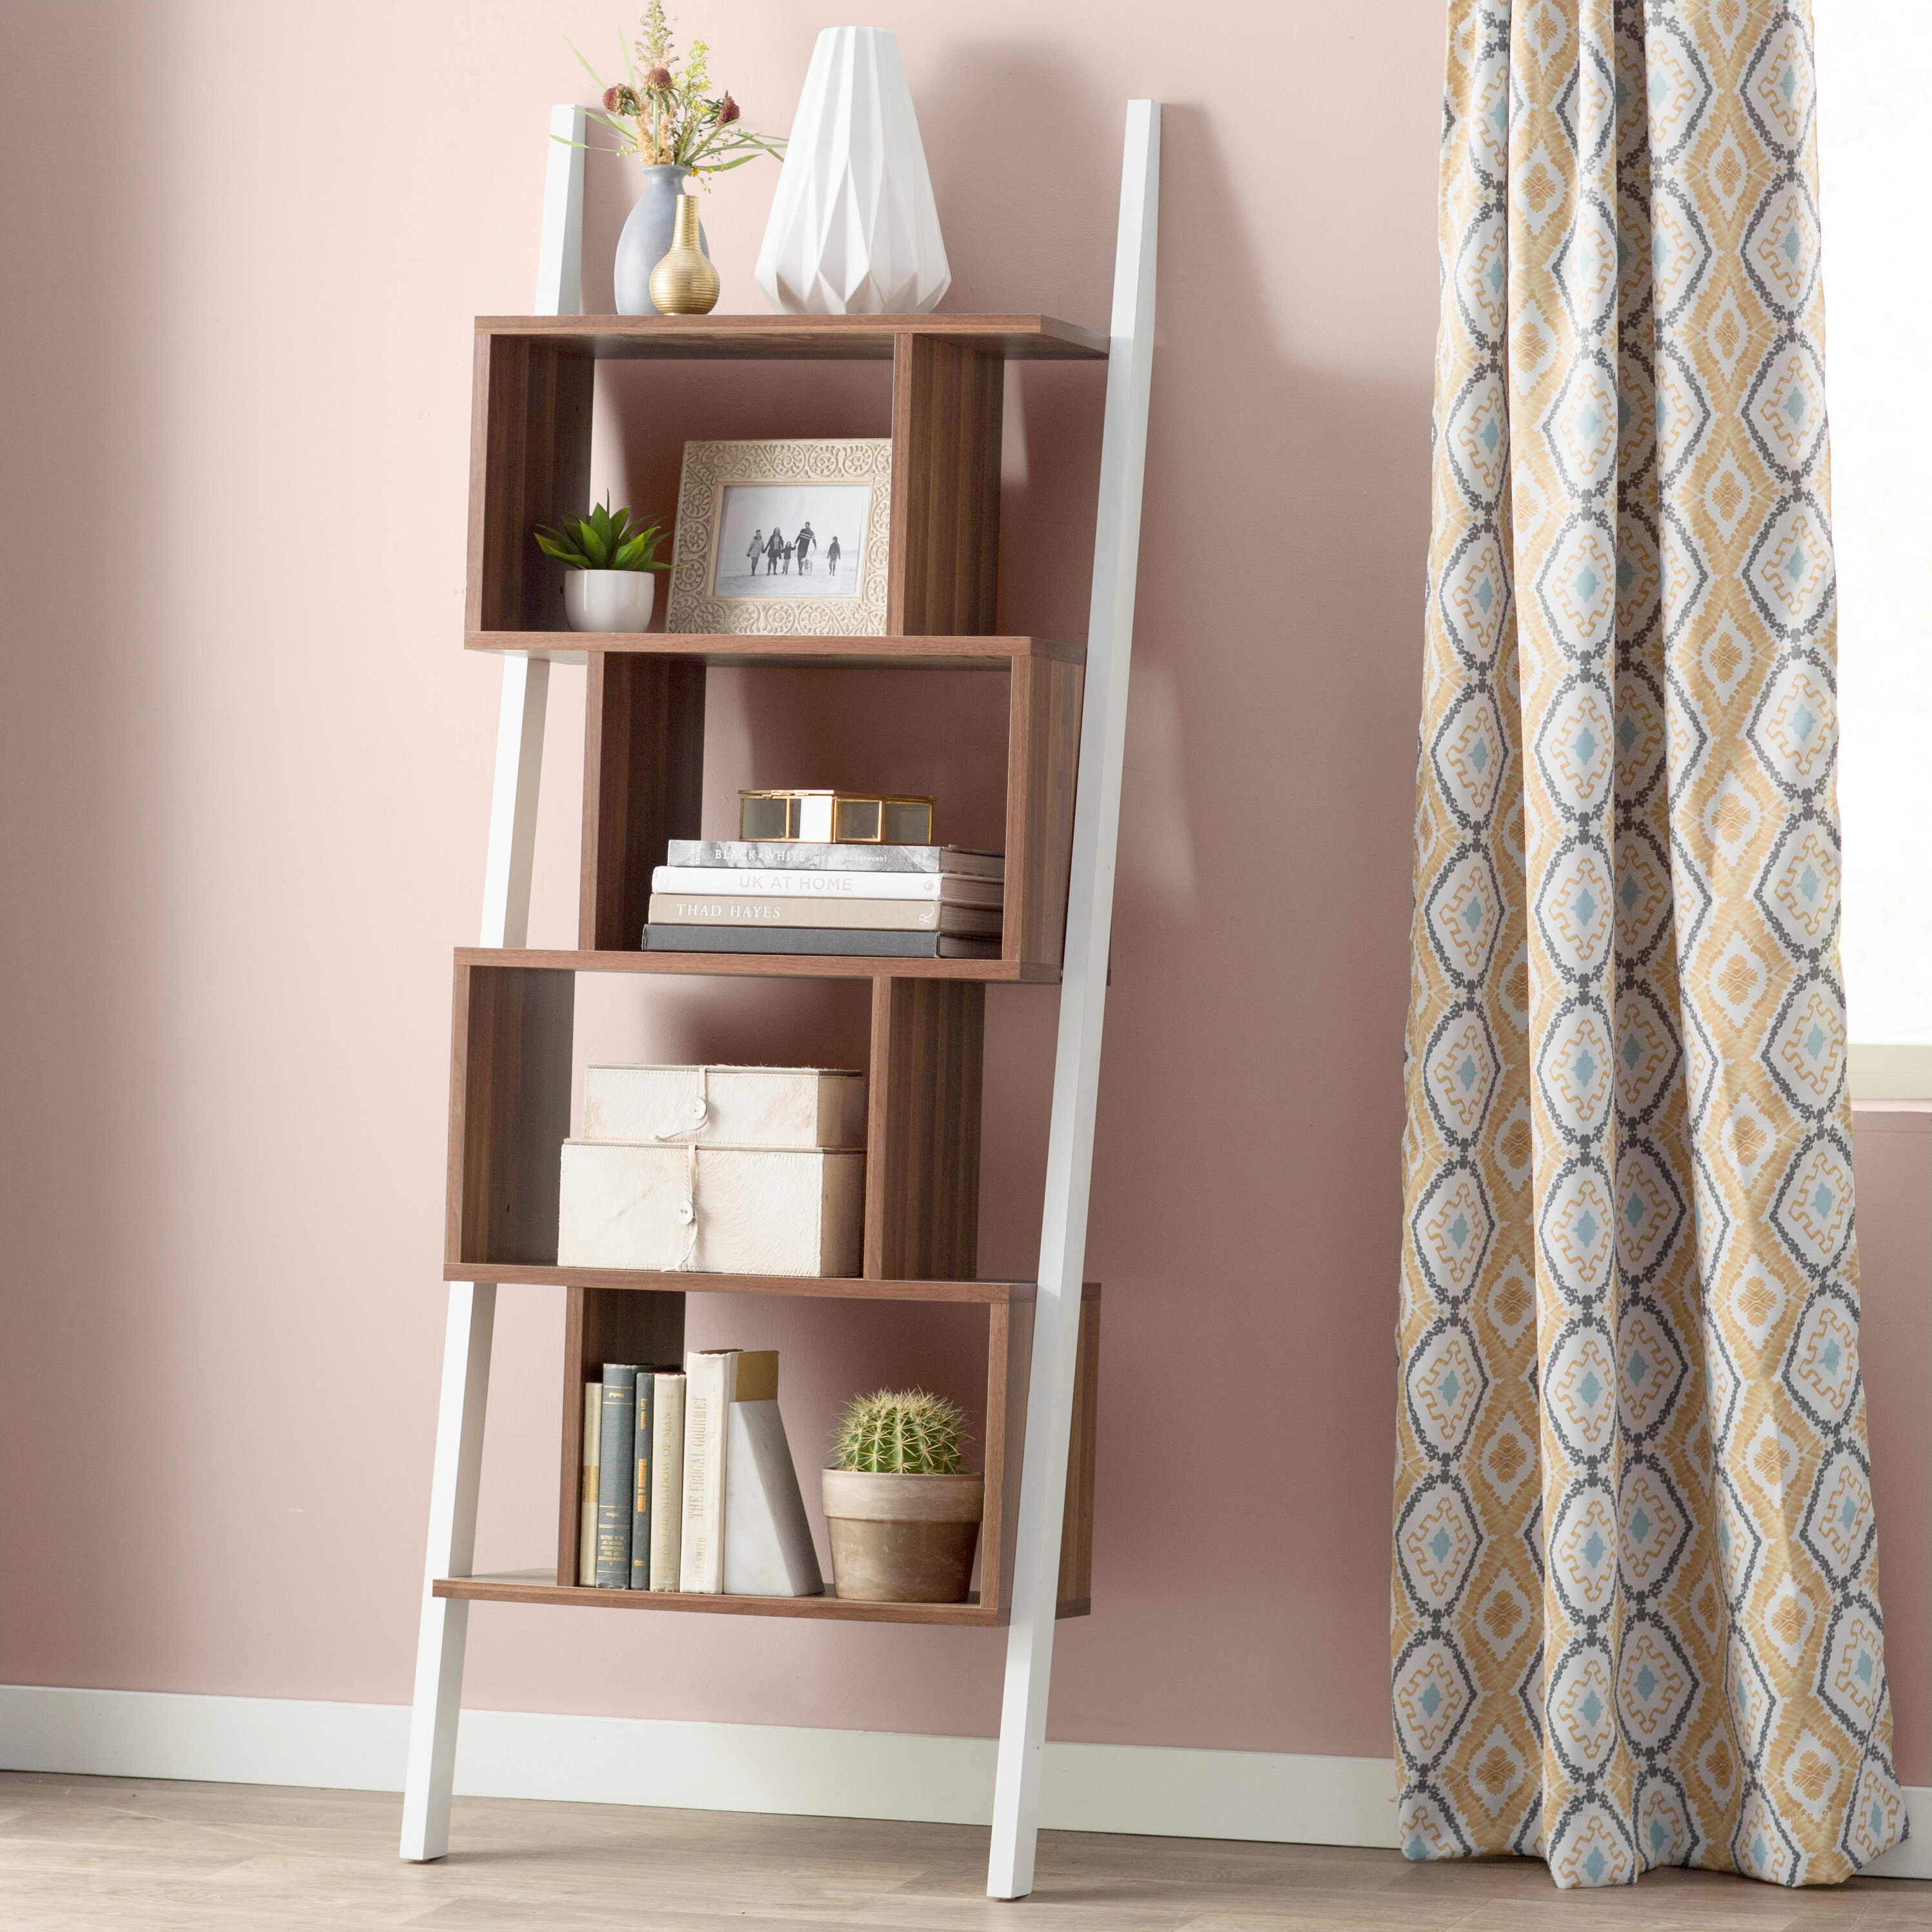 hazelwood uk co reviews white wayfair bookshelf home pdp bookcase furniture ladder